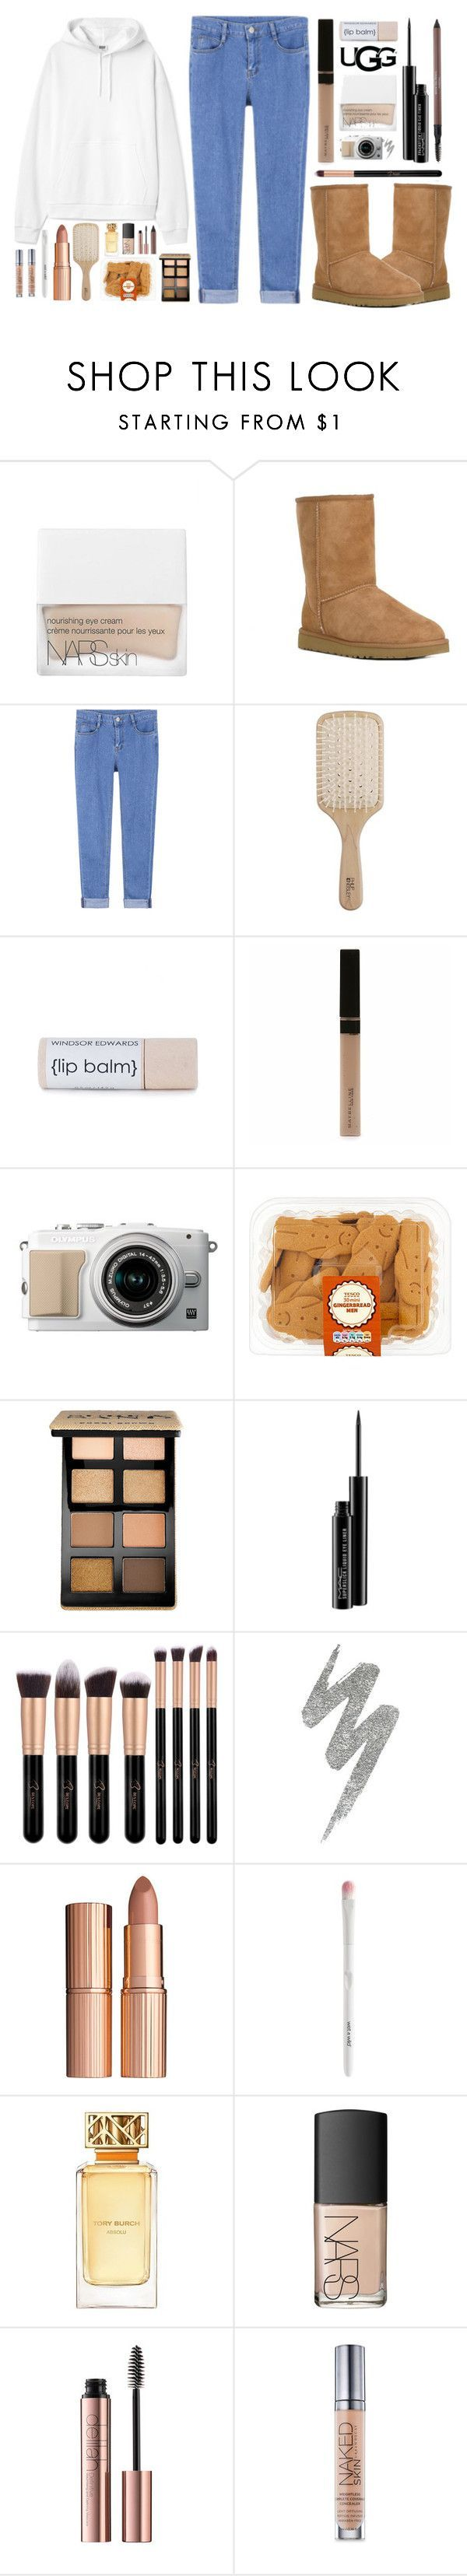 Lazy days by itsfashioninfinity ❤ liked on Polyvore featuring NARS Cosmetics, UGG Australia, UGG, Philip Kingsley, Maybelline, Bobbi Brown Cosmetics, MAC Cosmetics, Urban Decay, Charlotte Tilbury and Tory Burch